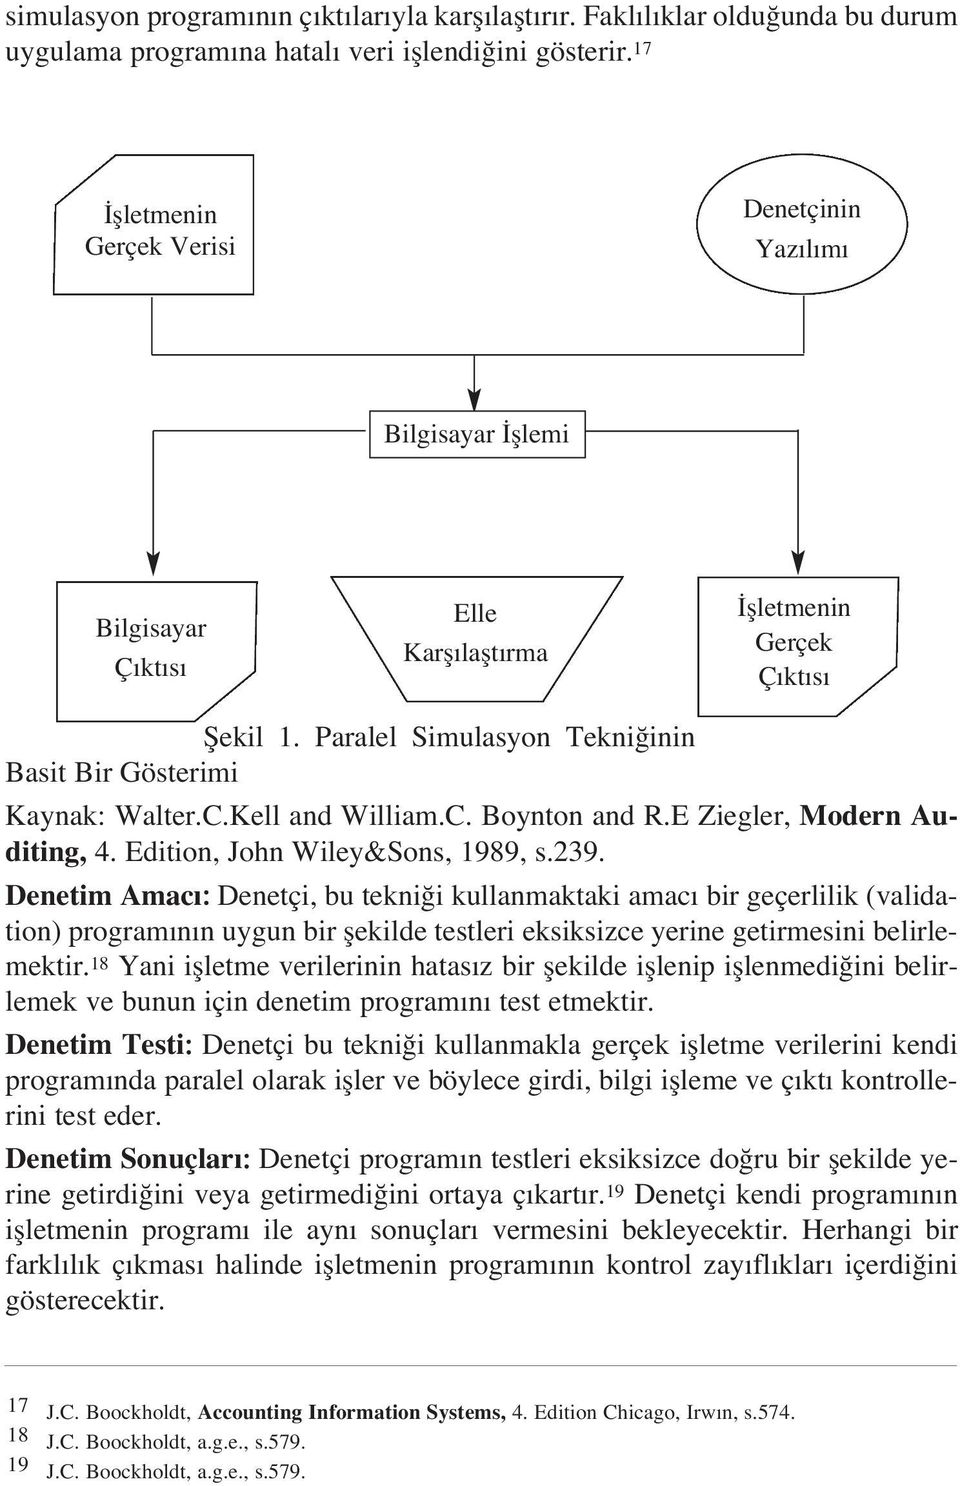 Paralel Simulasyon Tekni inin Basit Bir Gösterimi Kaynak: Walter.C.Kell and William.C. Boynton and R.E Ziegler, Modern Auditing, 4. Edition, John Wiley&Sons, 1989, s.239.